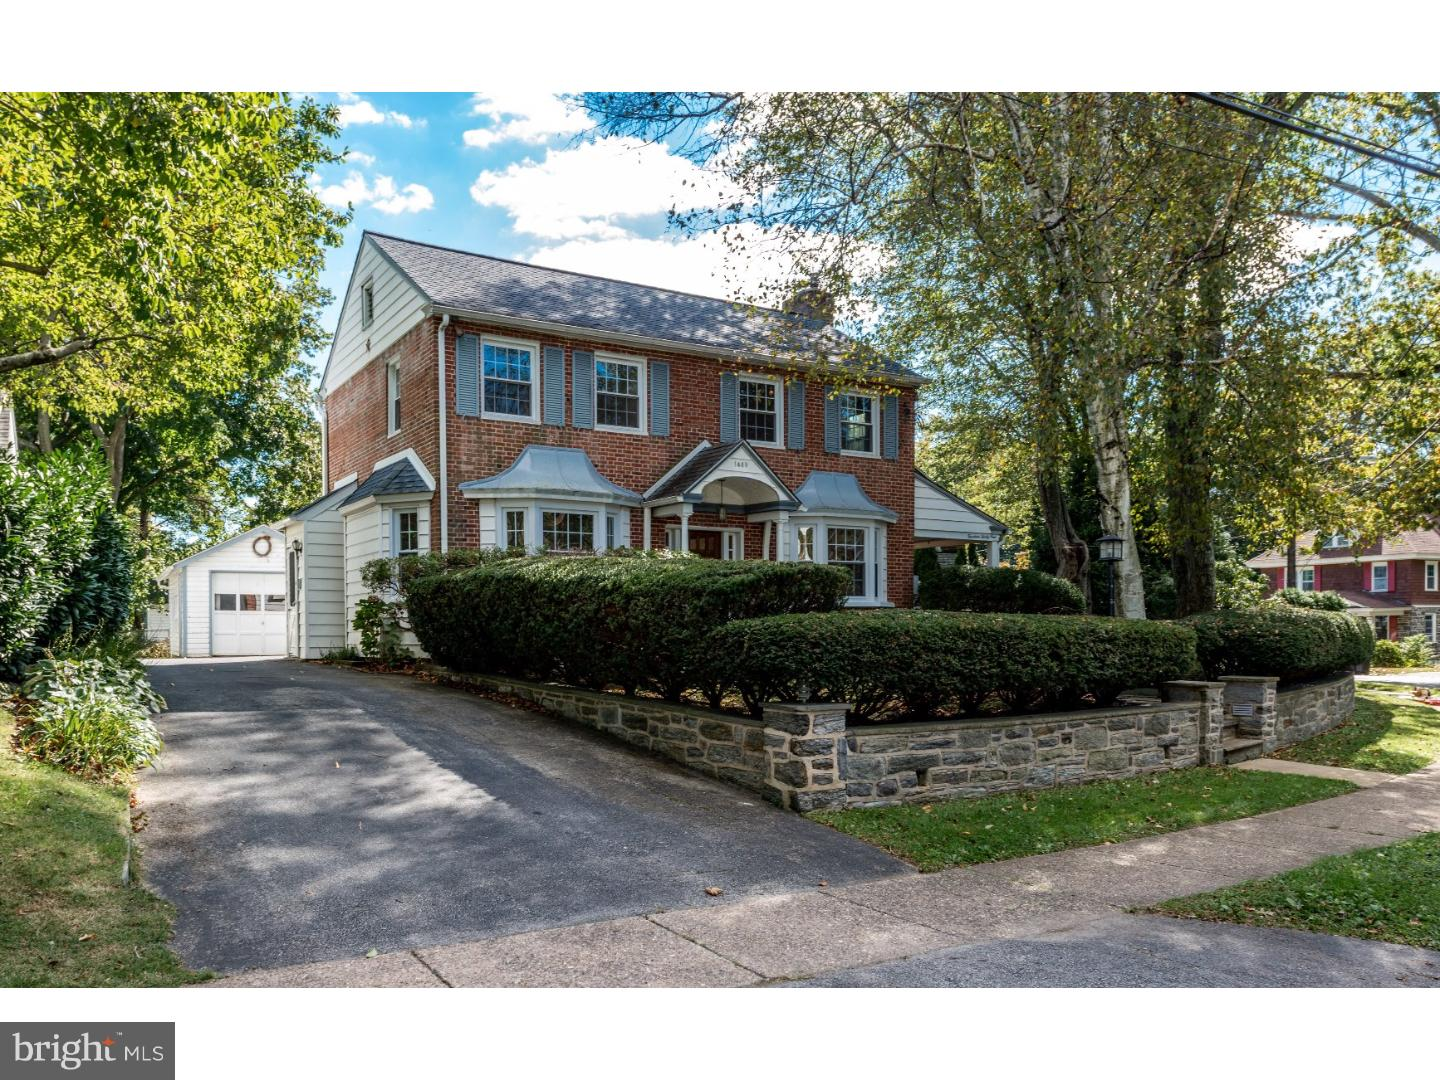 1439 Delmont Avenue Havertown, PA 19083